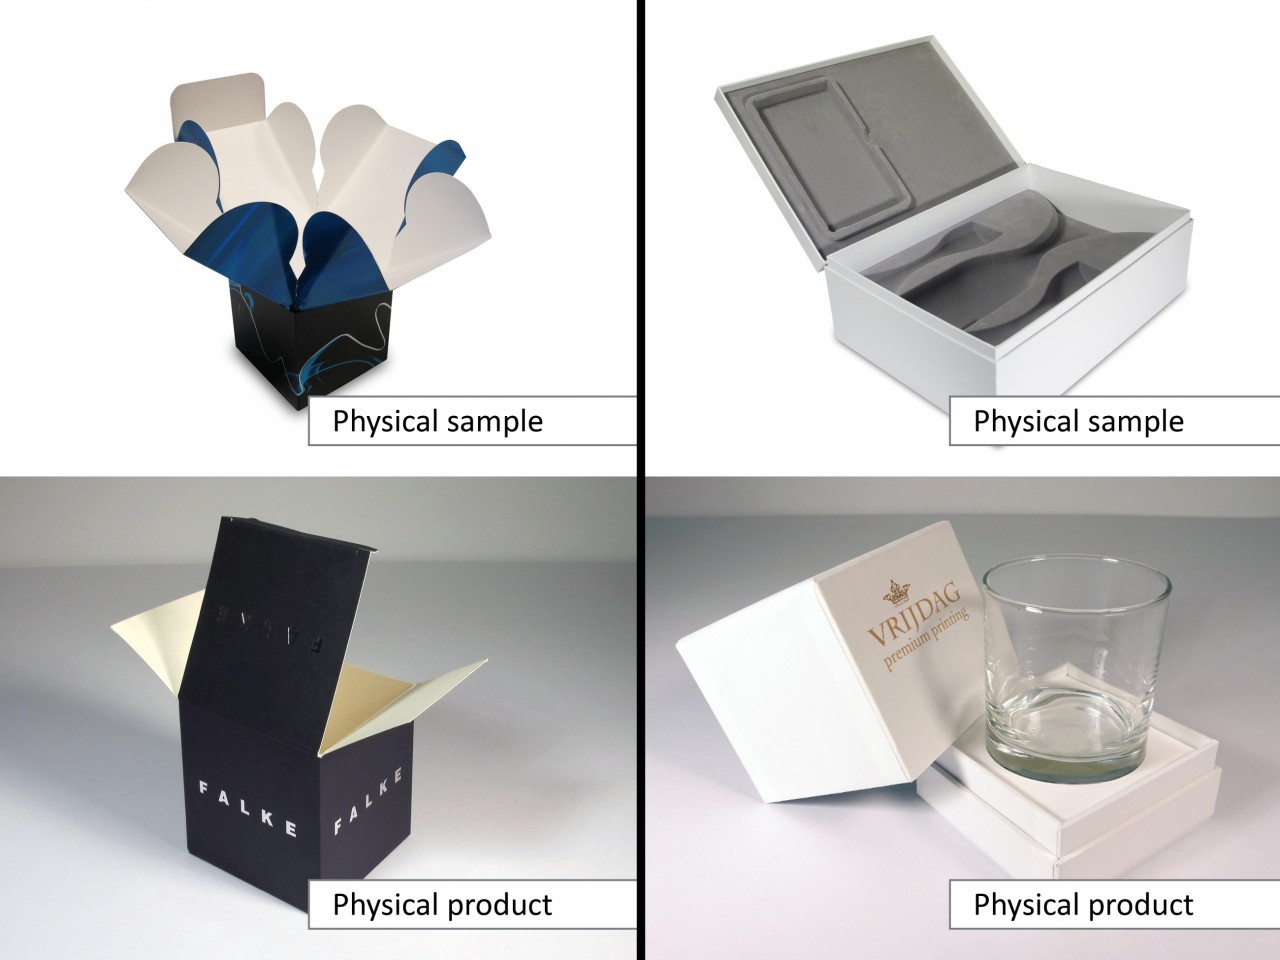 Examples of physical samples